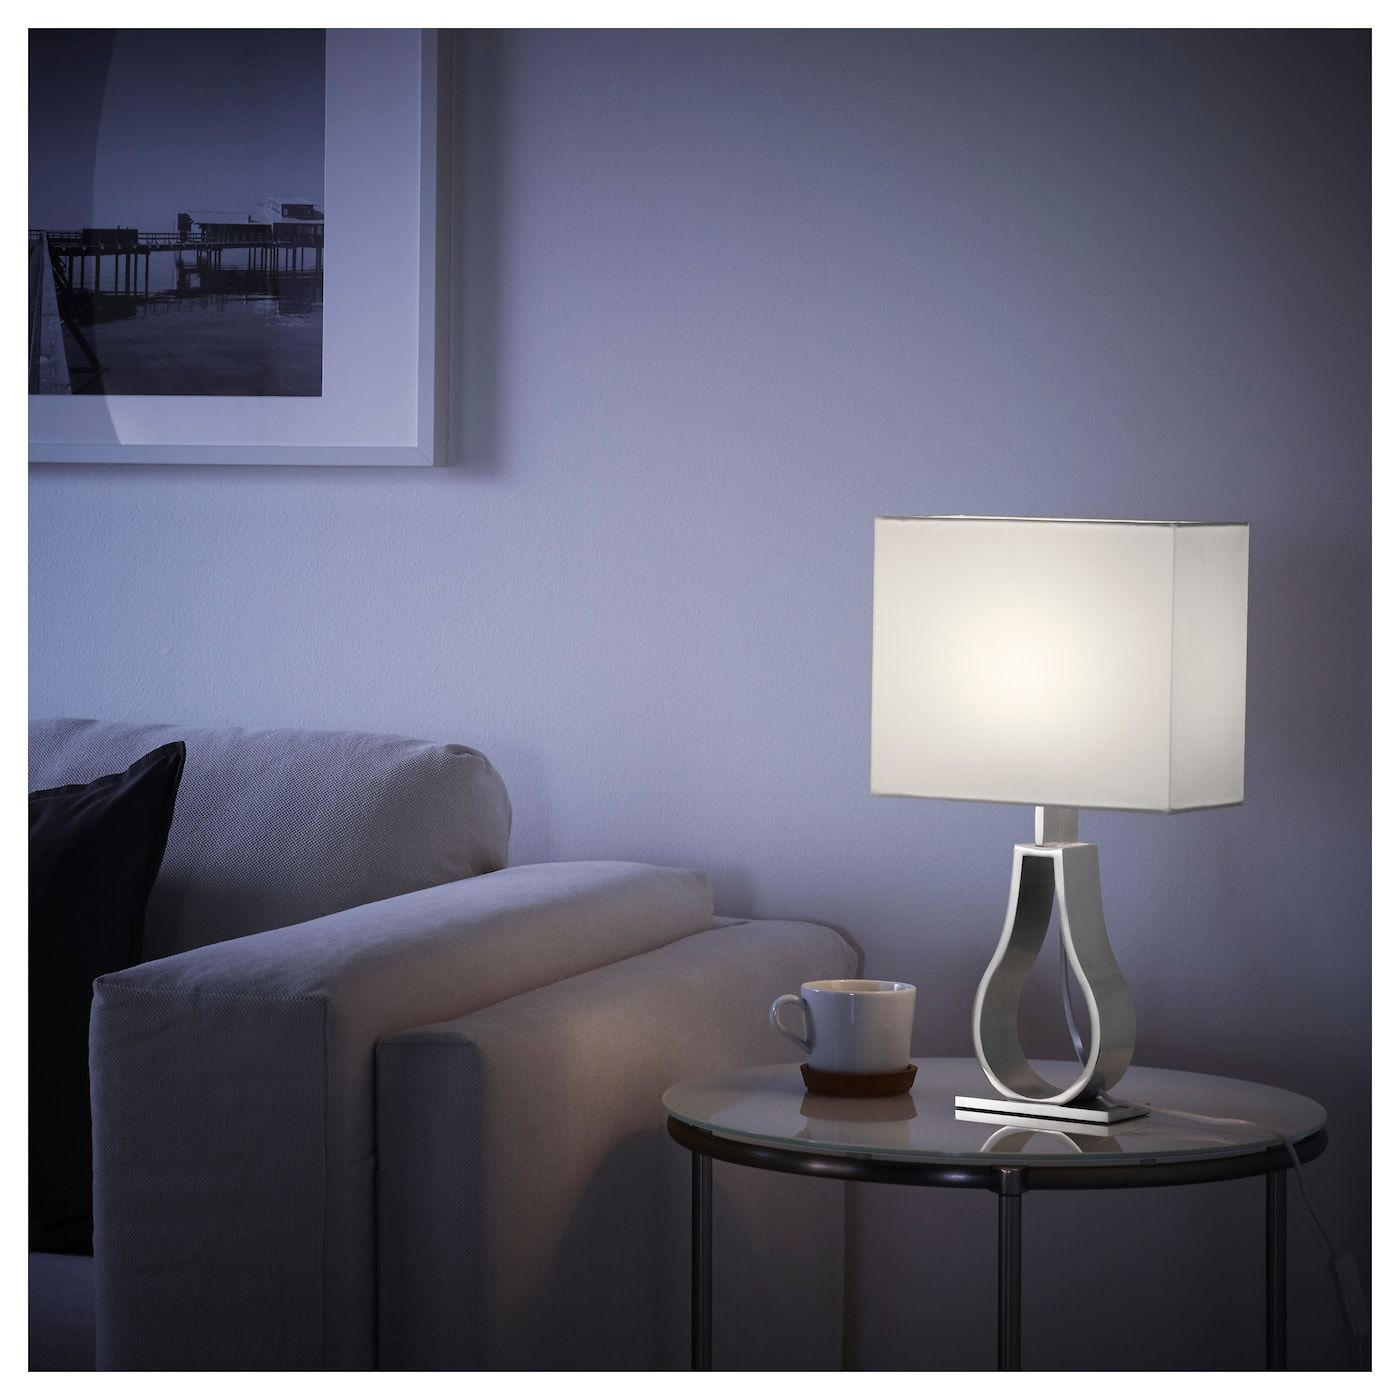 Lampe Mit Touchdimmer Ikea Ps Maskros Hngeleuchte With Lampe Mit Ikea Schlafzimmer Tischlampe